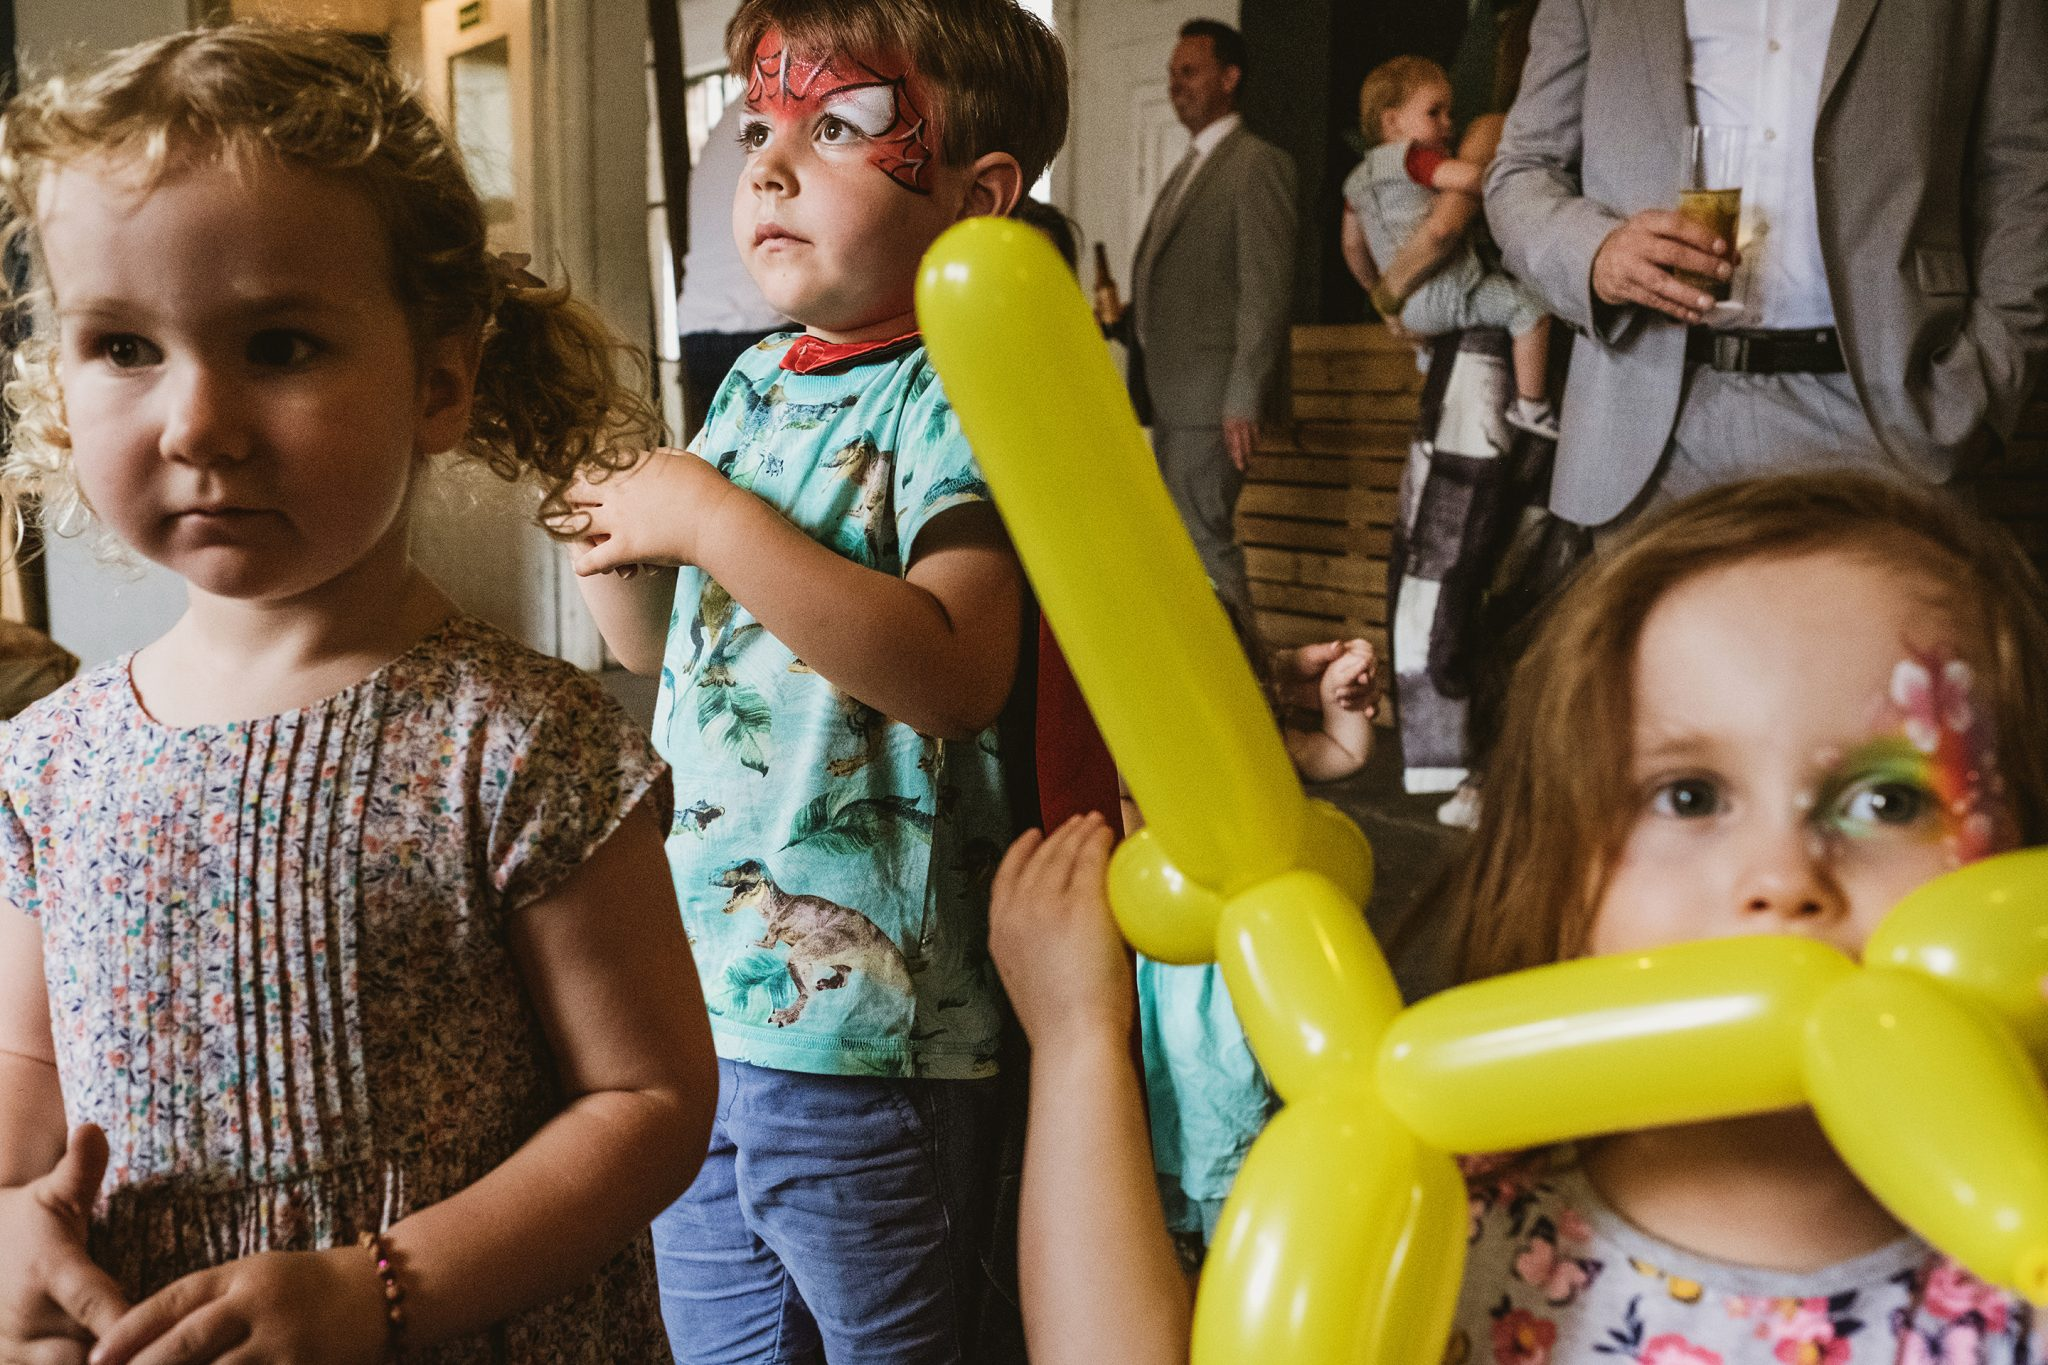 Family gathering photography in London UK. Several children appear in multiple layers of the frame. A girl in facepaint on the left holds a bright yellow balloon animal.